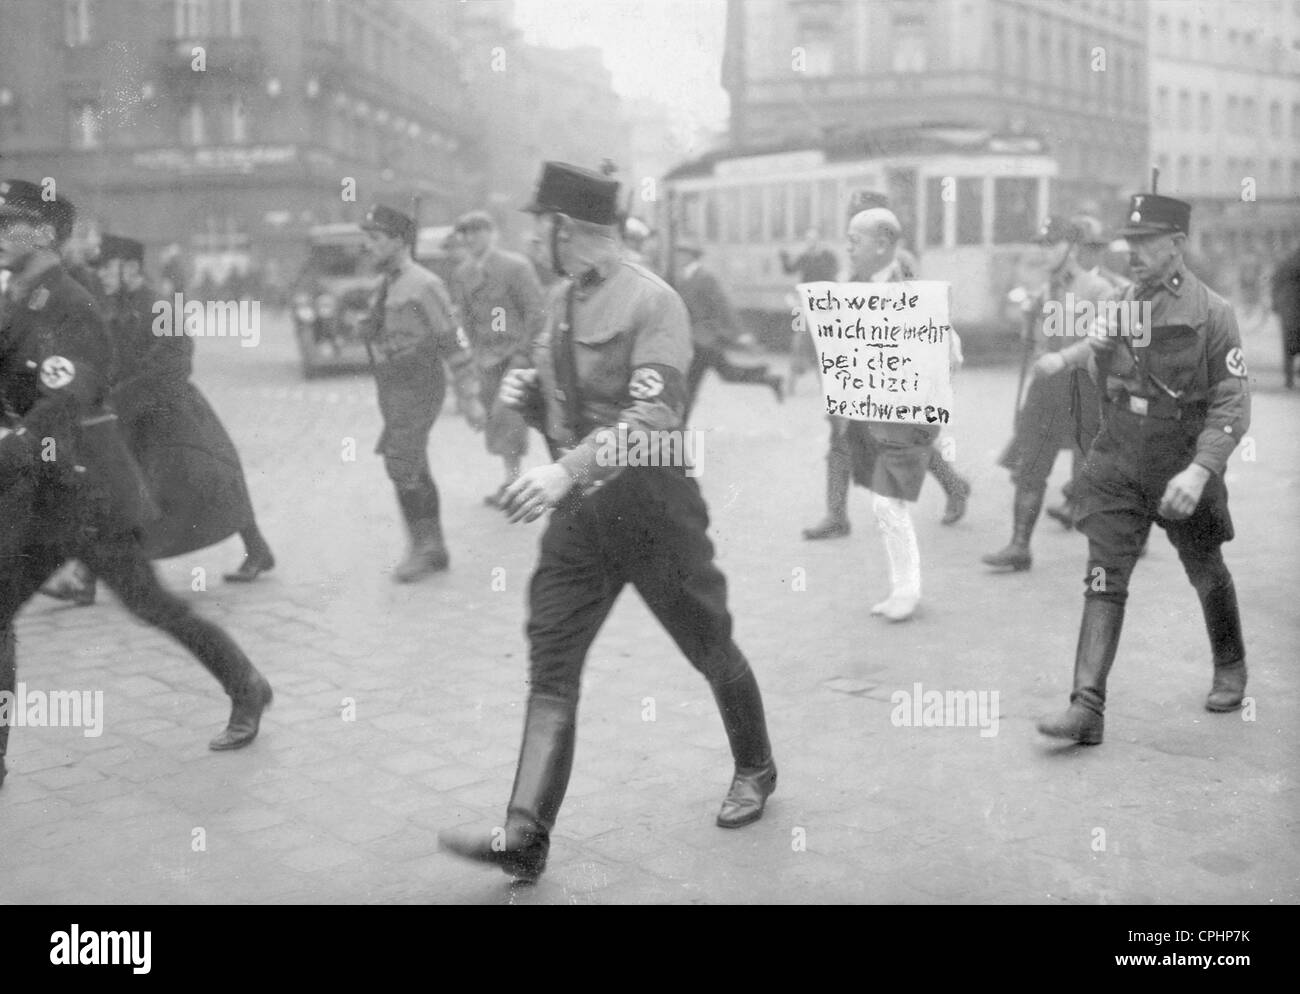 Jewish attorney Michael Siegel directed barefoot through the city streets under SS escort, with his trousers cut - Stock Image